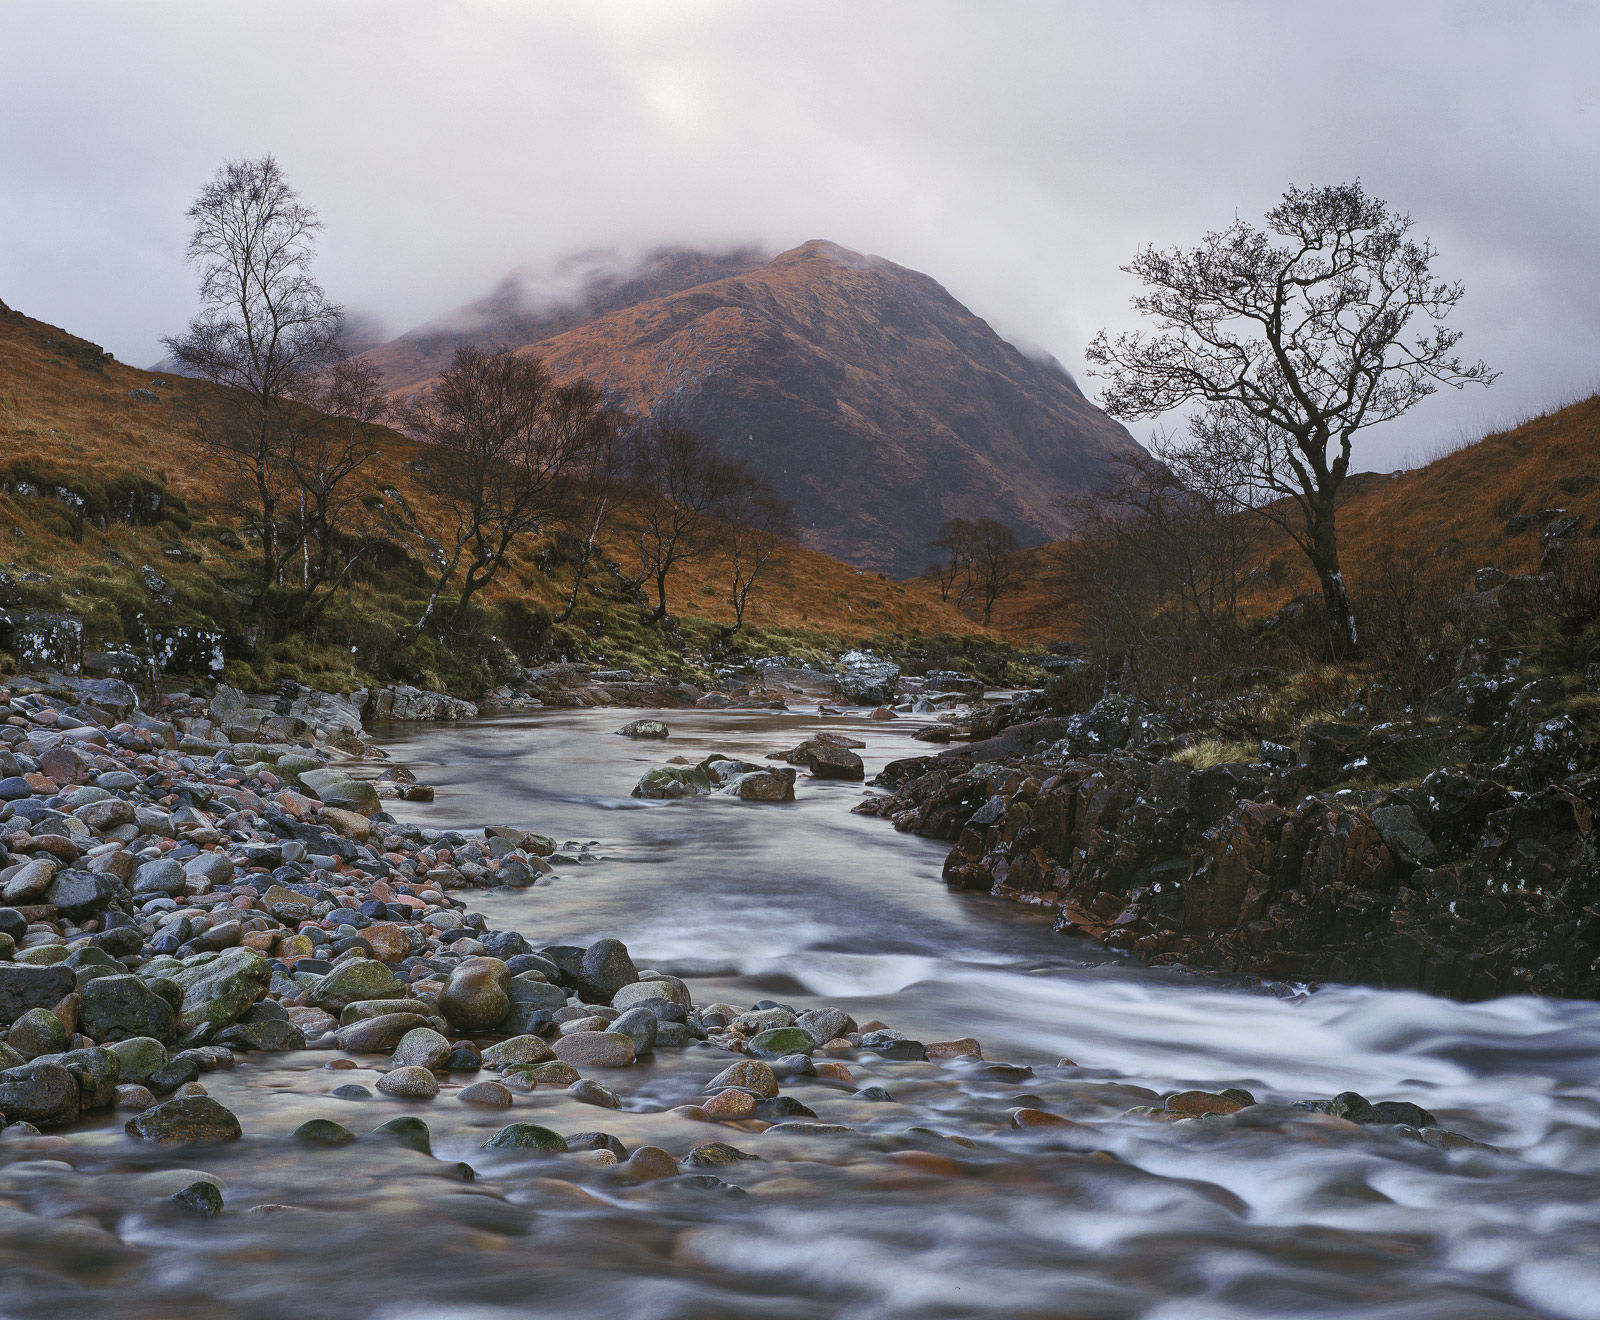 The river Etive flows through this beautiful glen which is rich in multi-hued rocks which litter the river bed and over which...